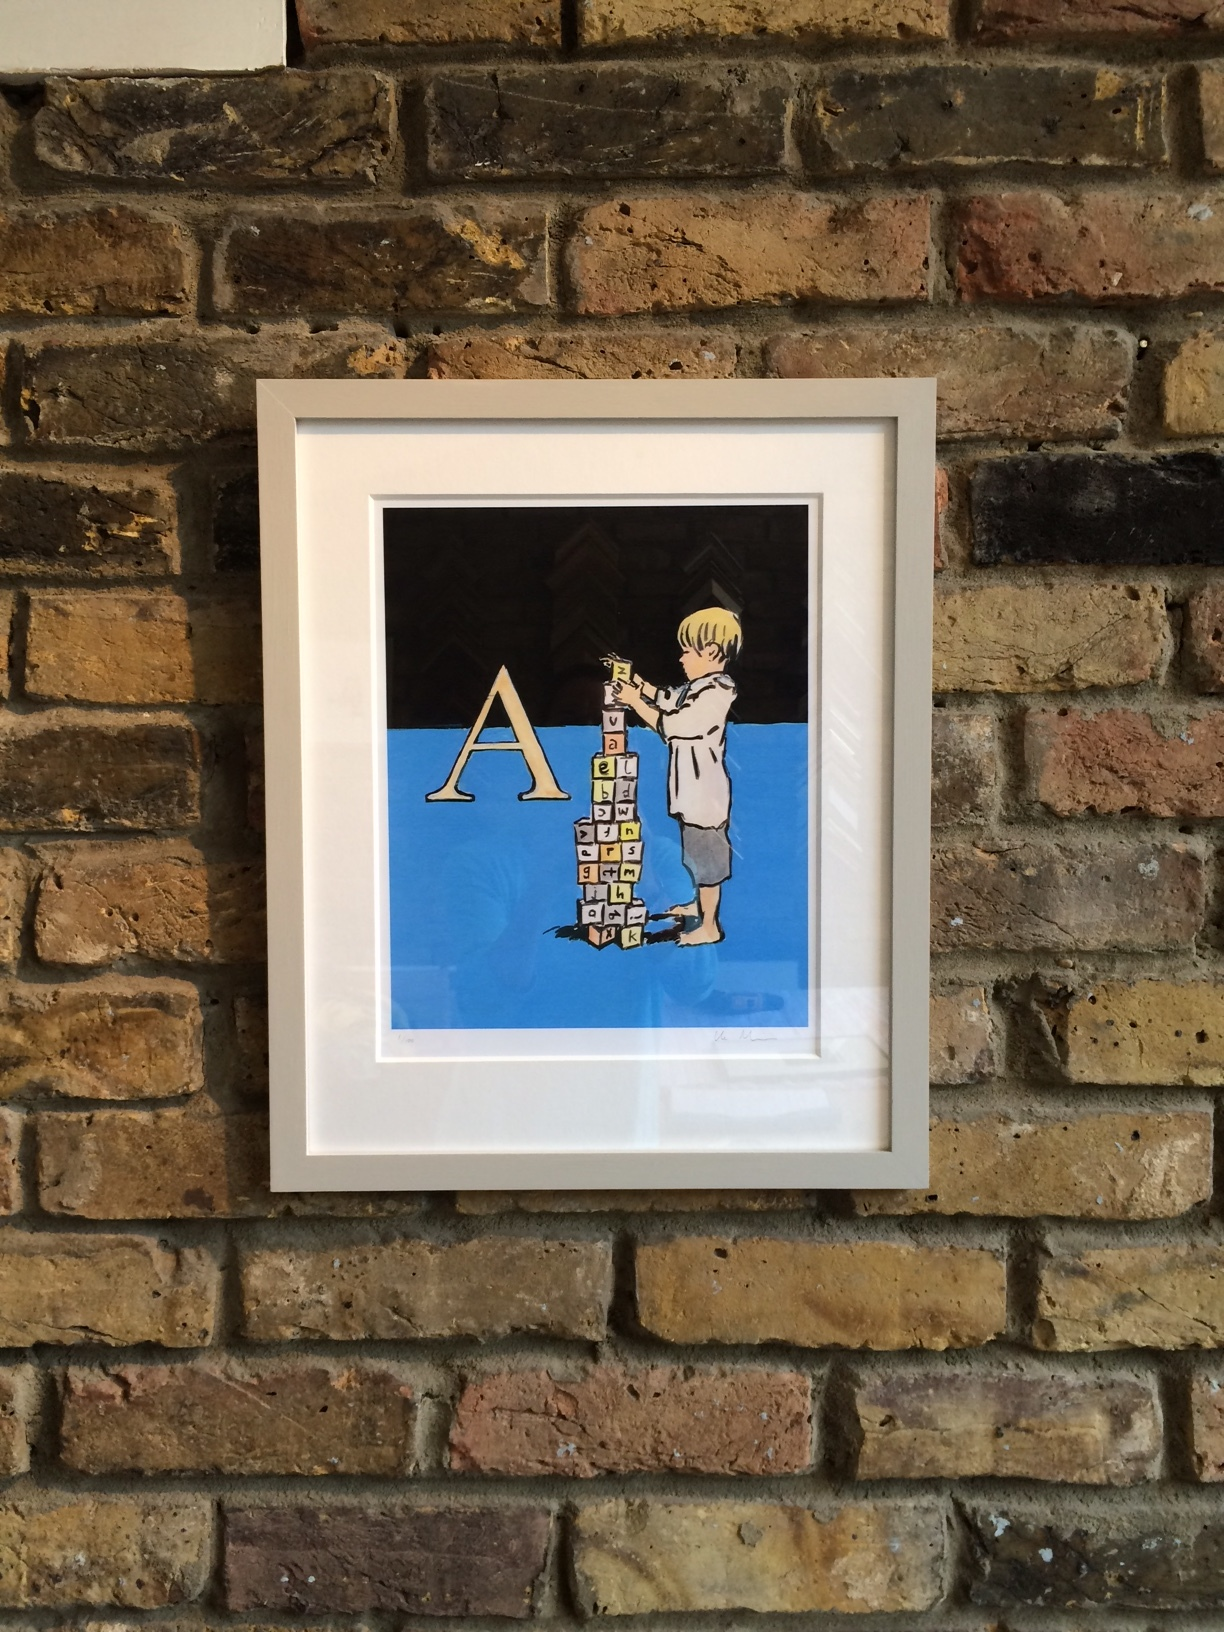 A is for…Deep mount, hand painted frame. Artist Luke Martineau